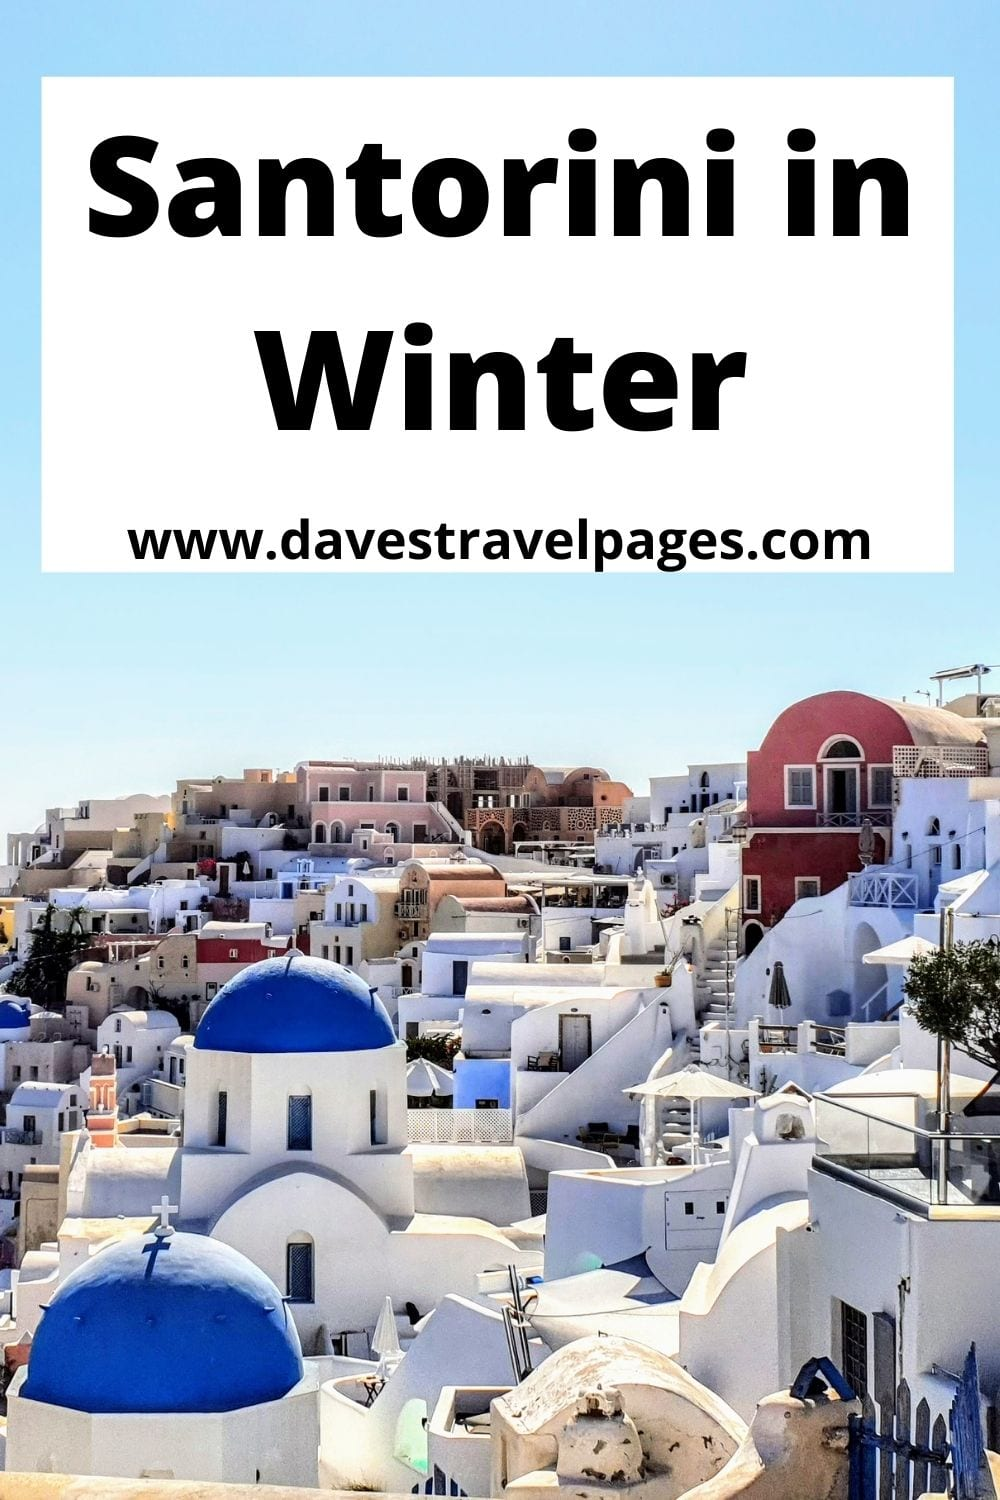 Santorini in Winter - A guide to things to see and do